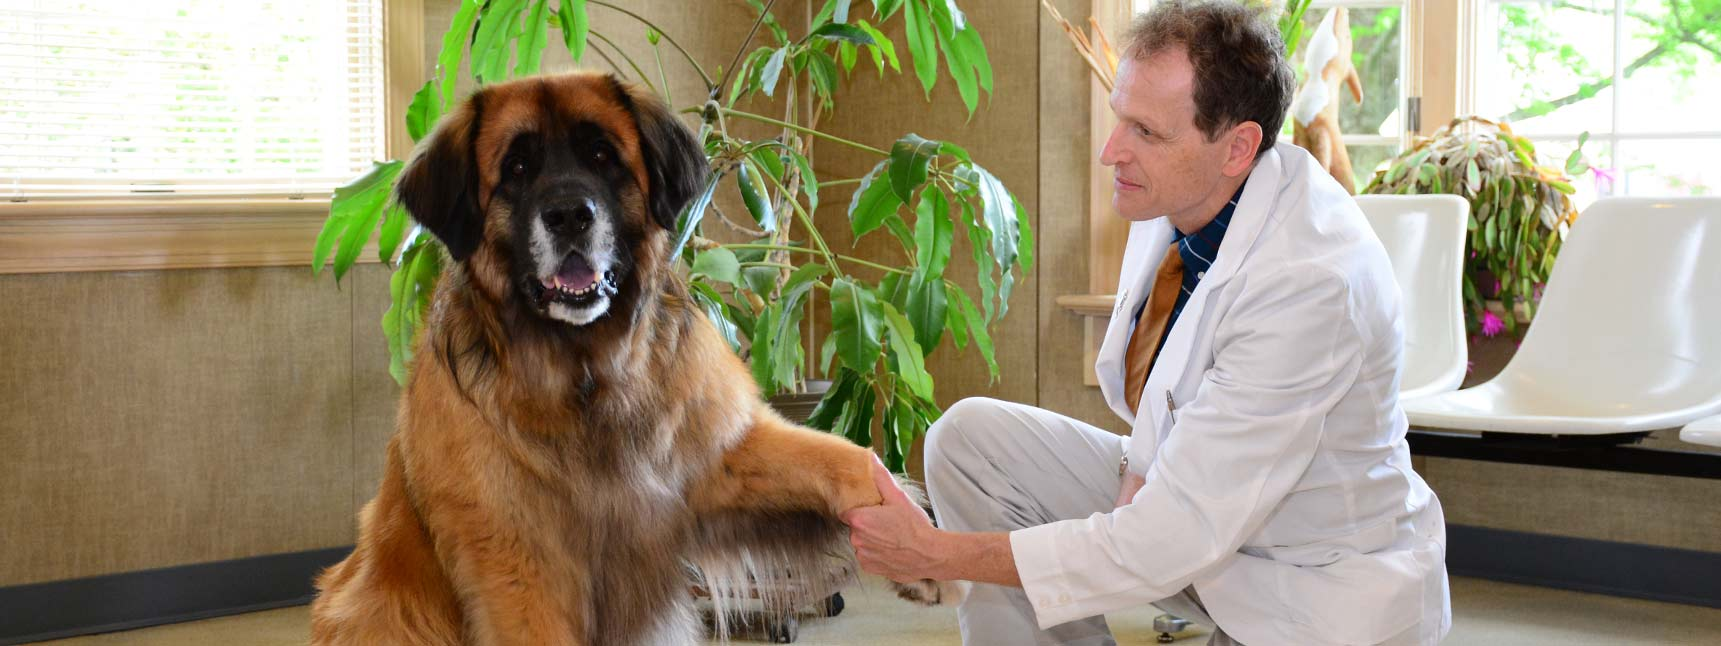 Animal Hospital in Chagrin Falls OH